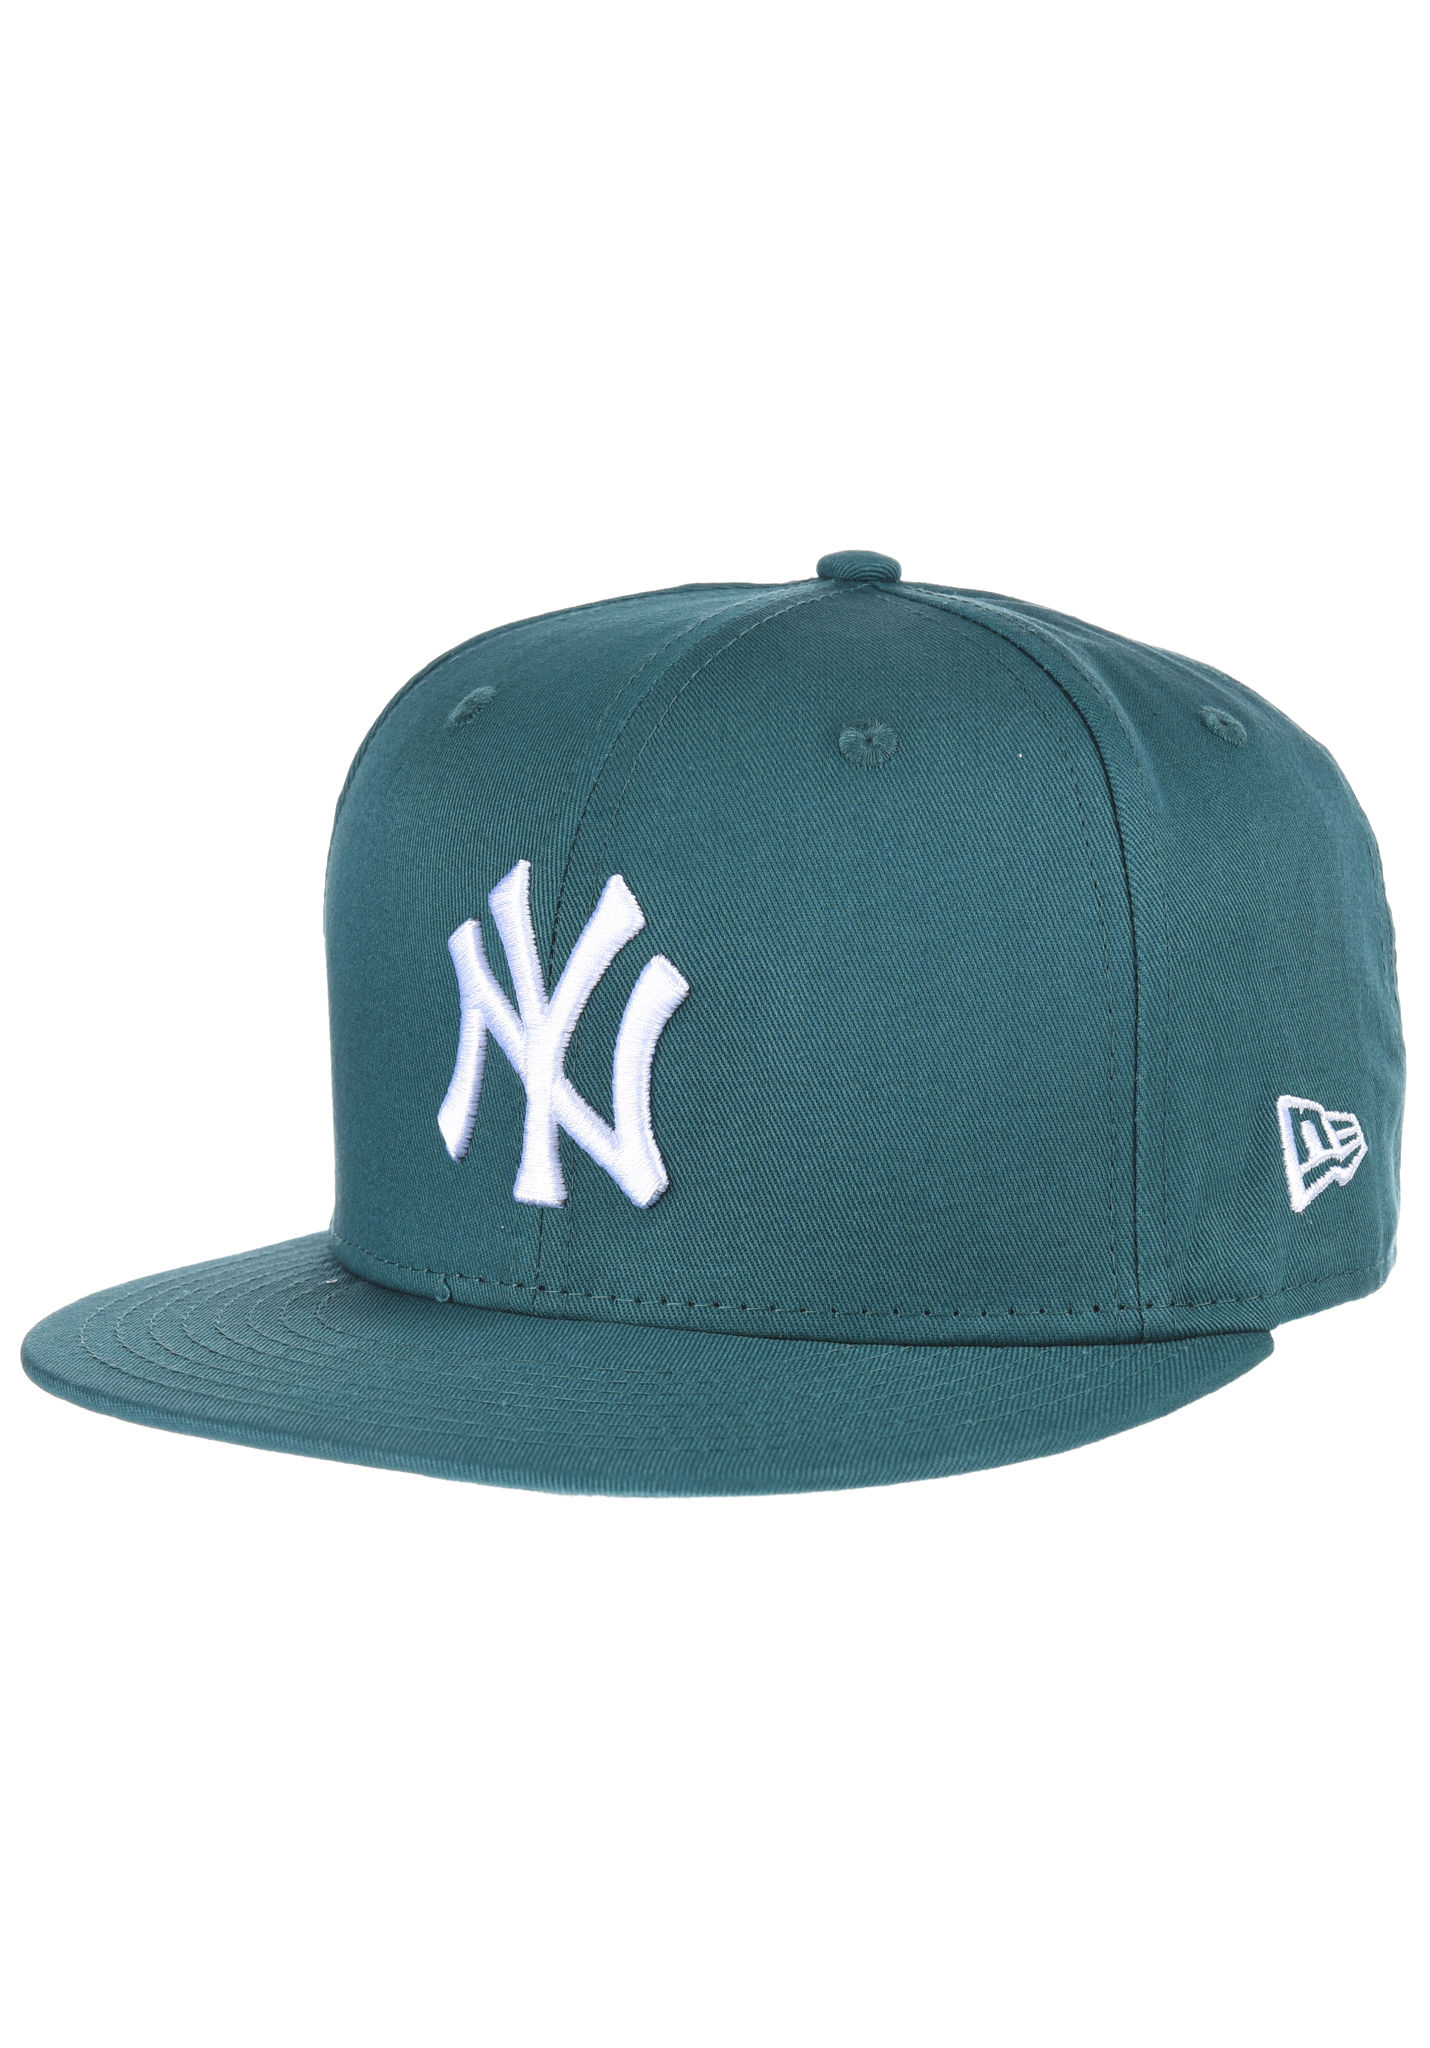 60b9fd14a9b NEW Era 9Fifty New York Yankees - Snapback Cap - Green - Planet Sports